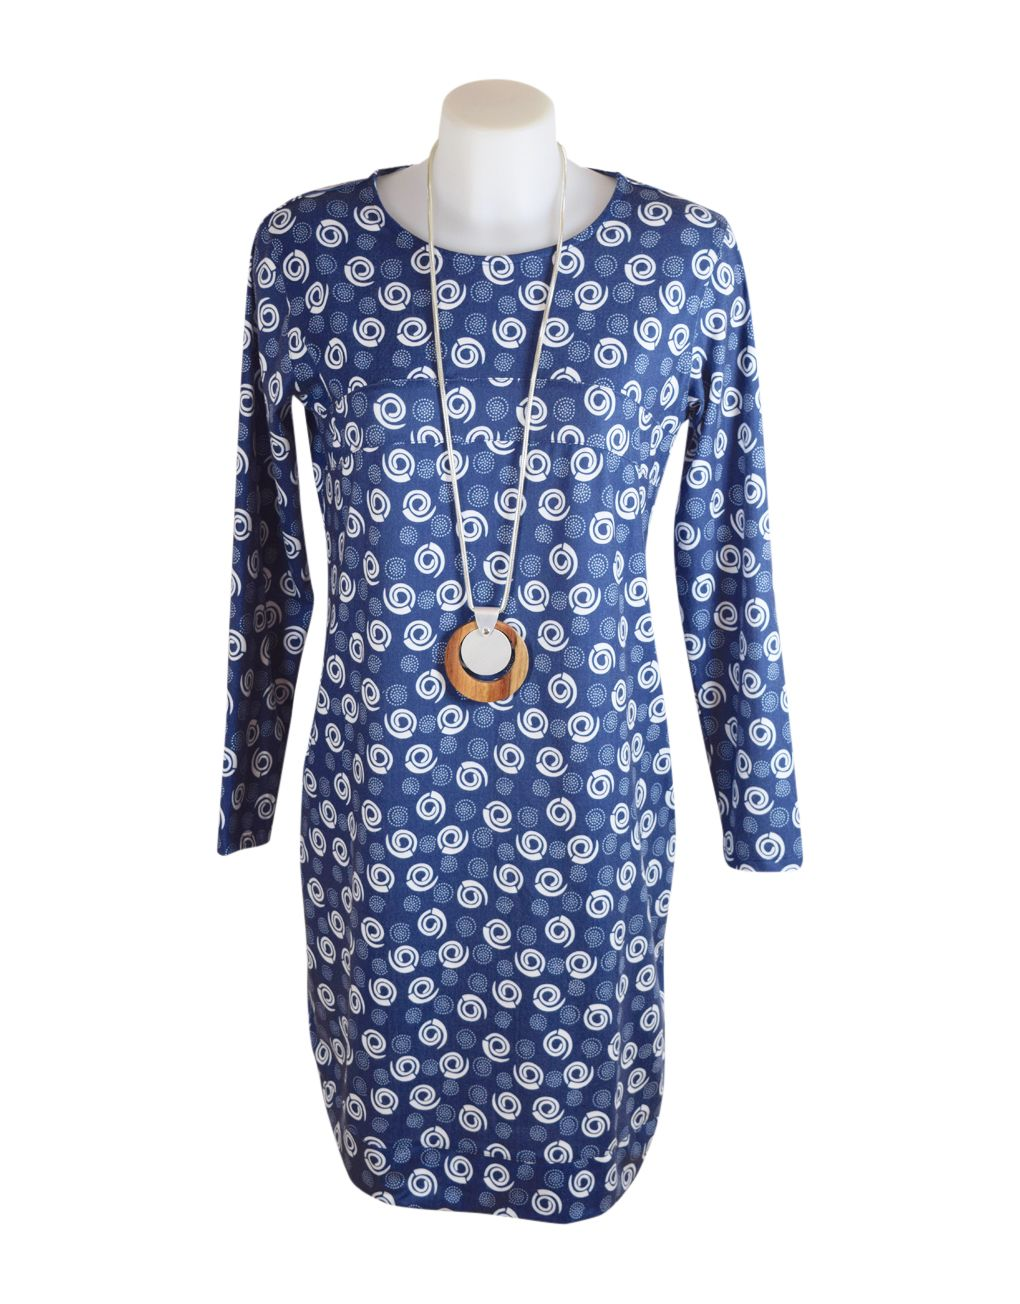 Alice Collins Flora Tunic Swirl Dot Dress 20 XXXL